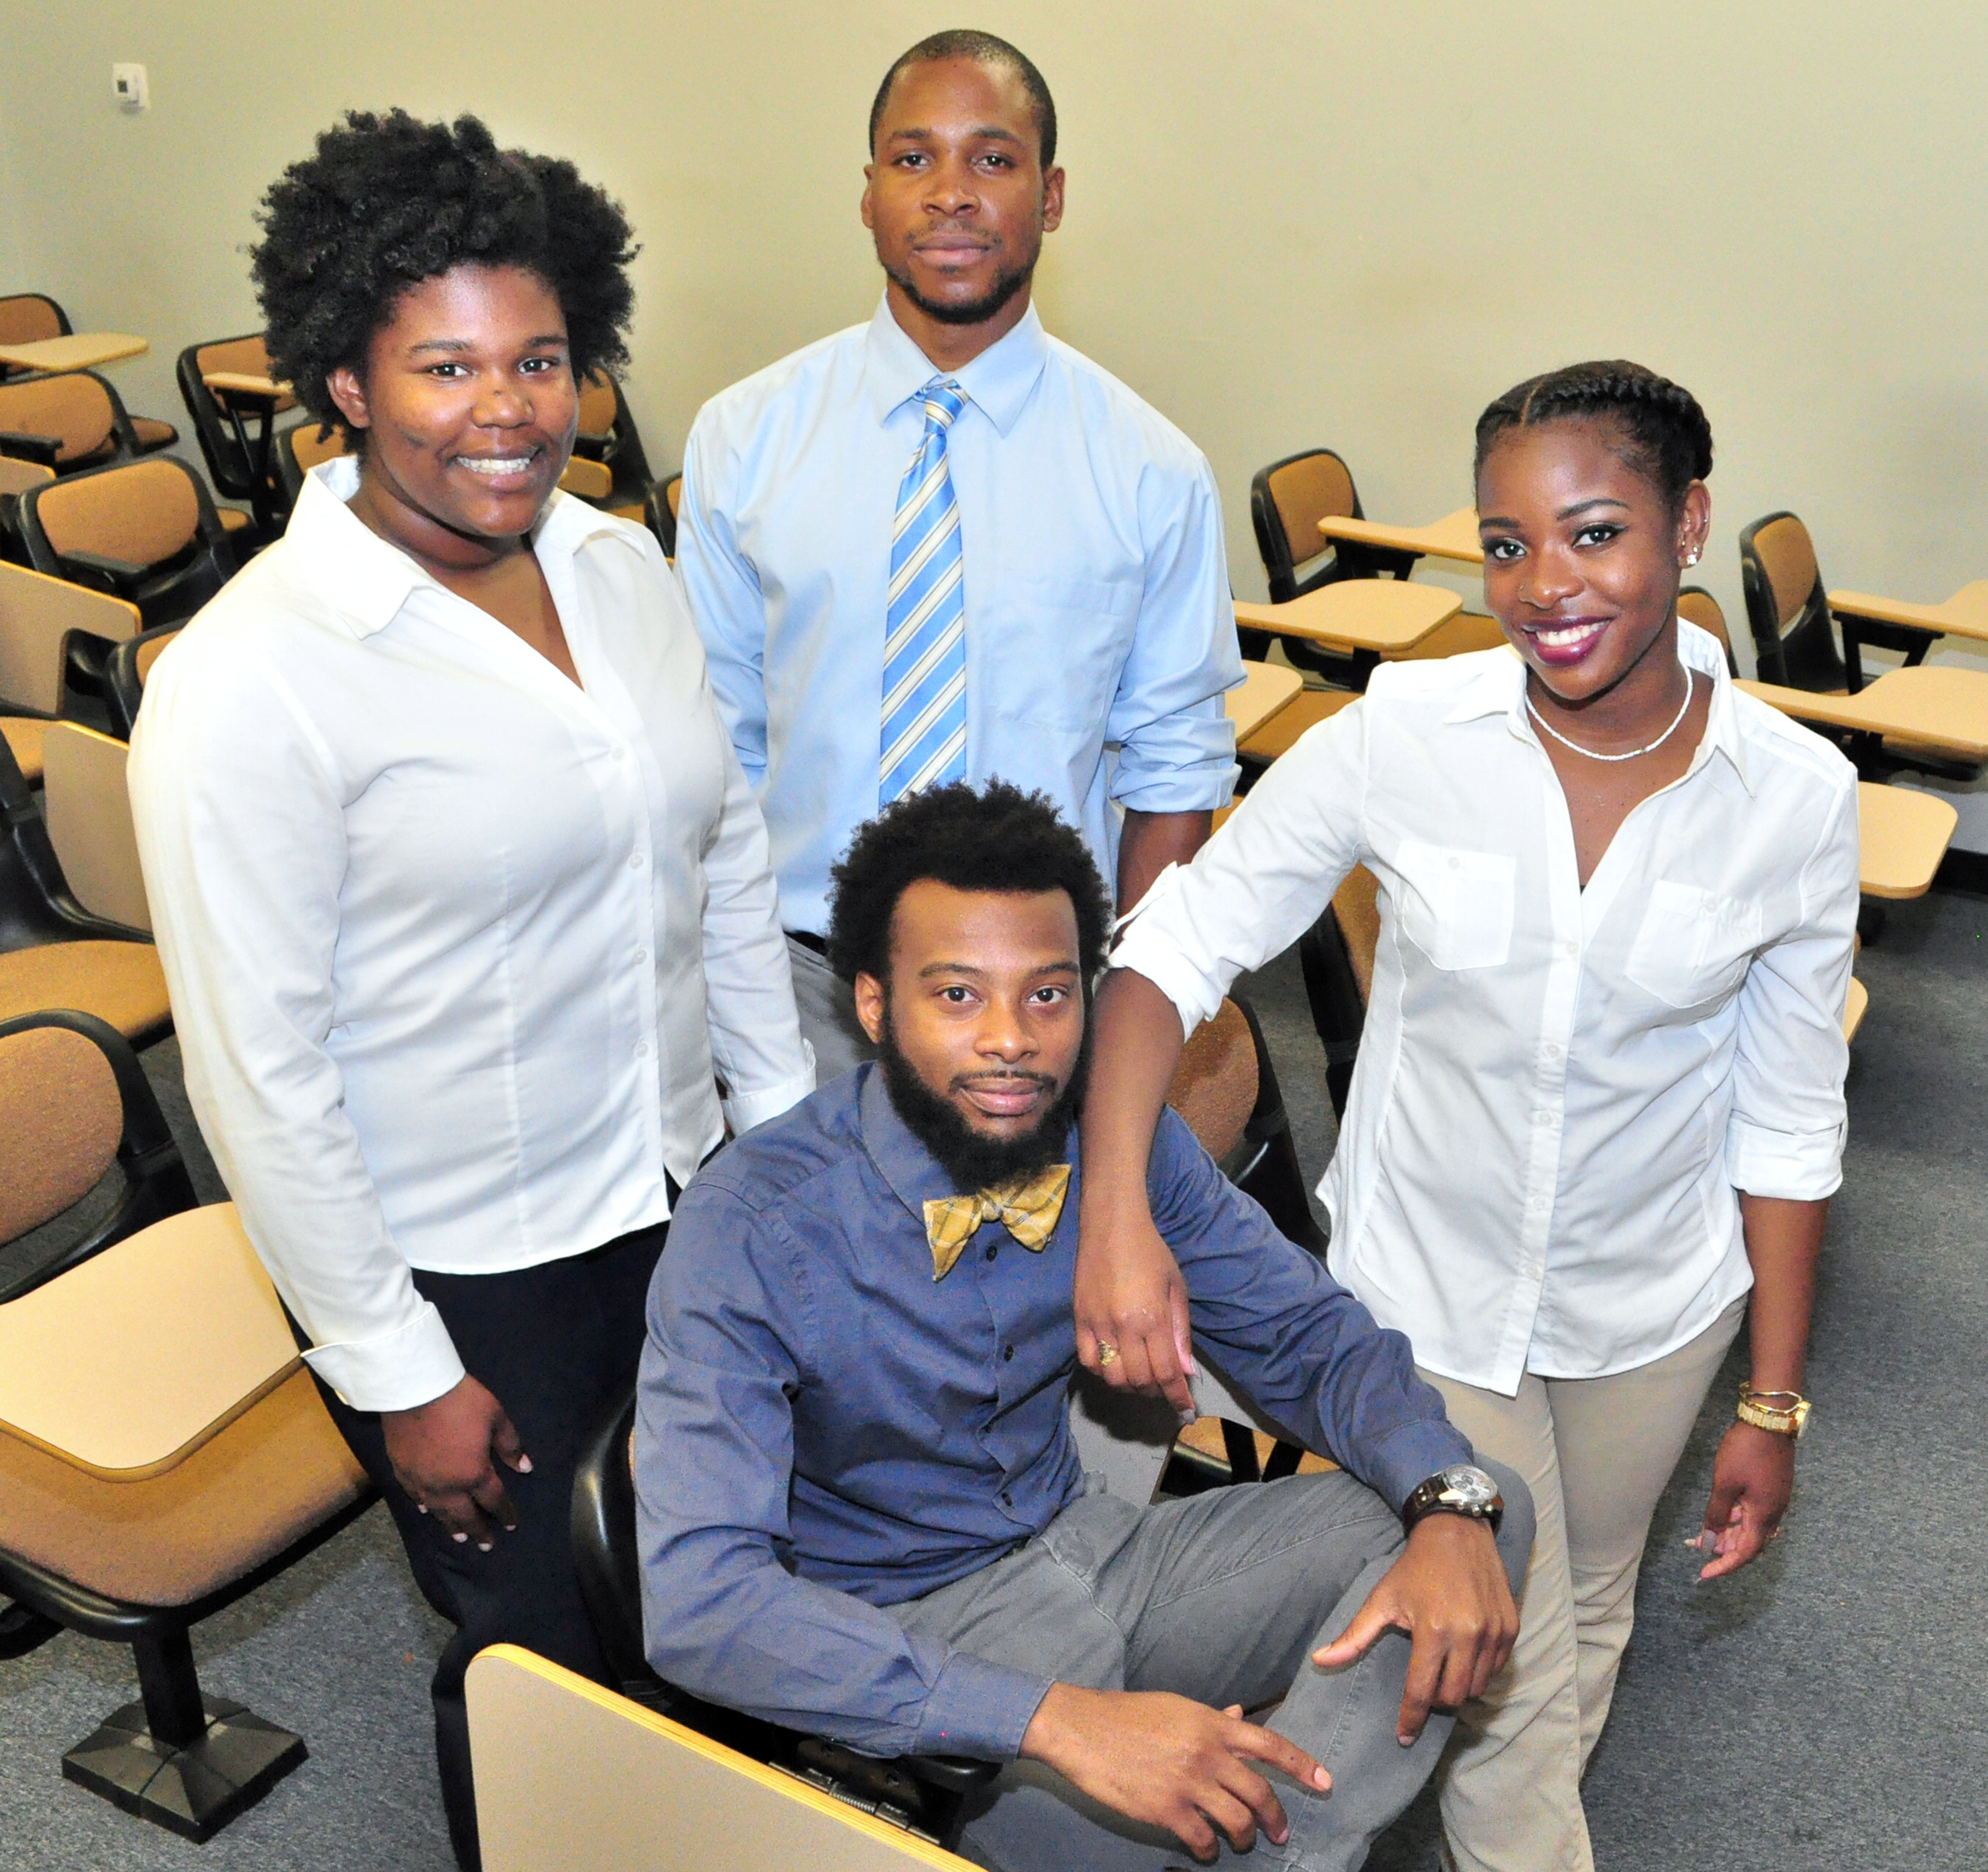 SUBR students who attended the LS-LAMP Research Symposium in National Harbor, Maryland, February 22-24, 2016, pictured left-right: Jonalyn A. Fair, Lamar Burton, QuoVadis R. Savoy, and Jasmond K. Tucker (seated). —Photo SUBR Office of Communications.